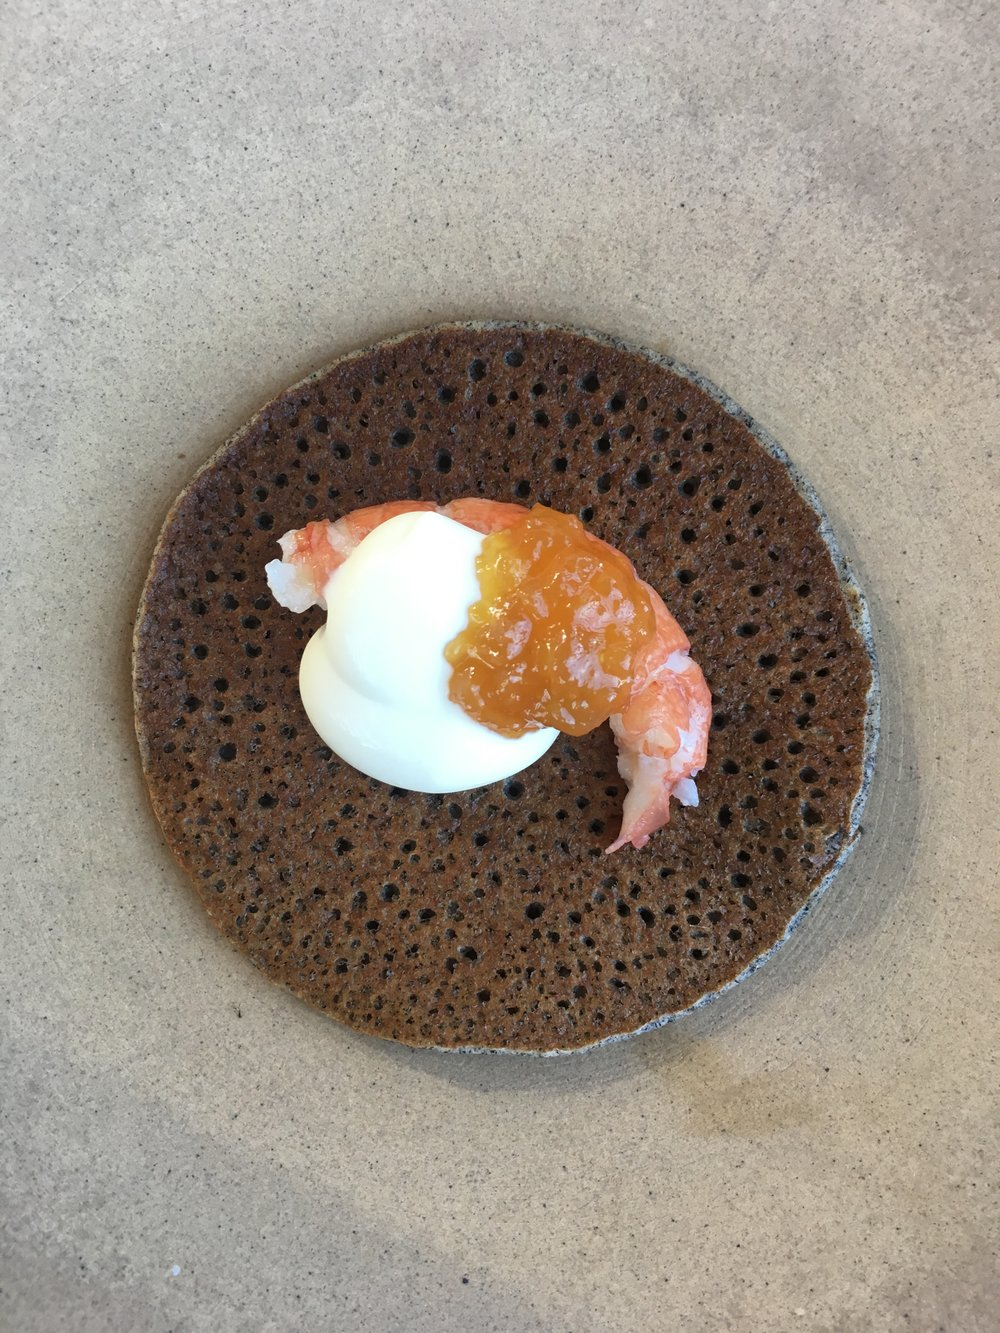 Yabby, buckwheat pancake, soured cream, lemon jam